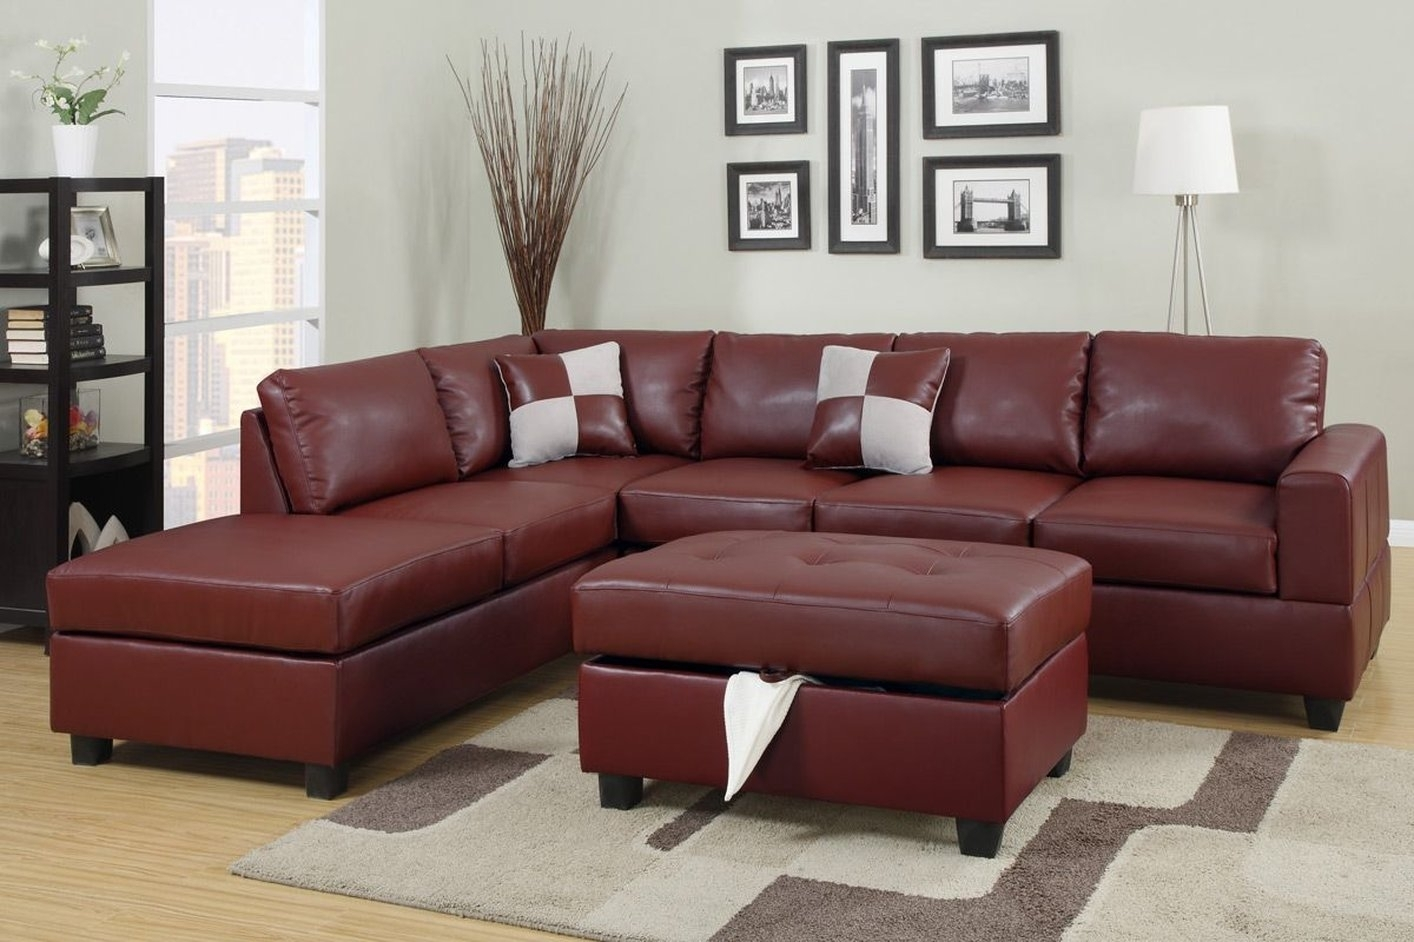 Featured Image of Red Leather Sectional Sofas With Ottoman